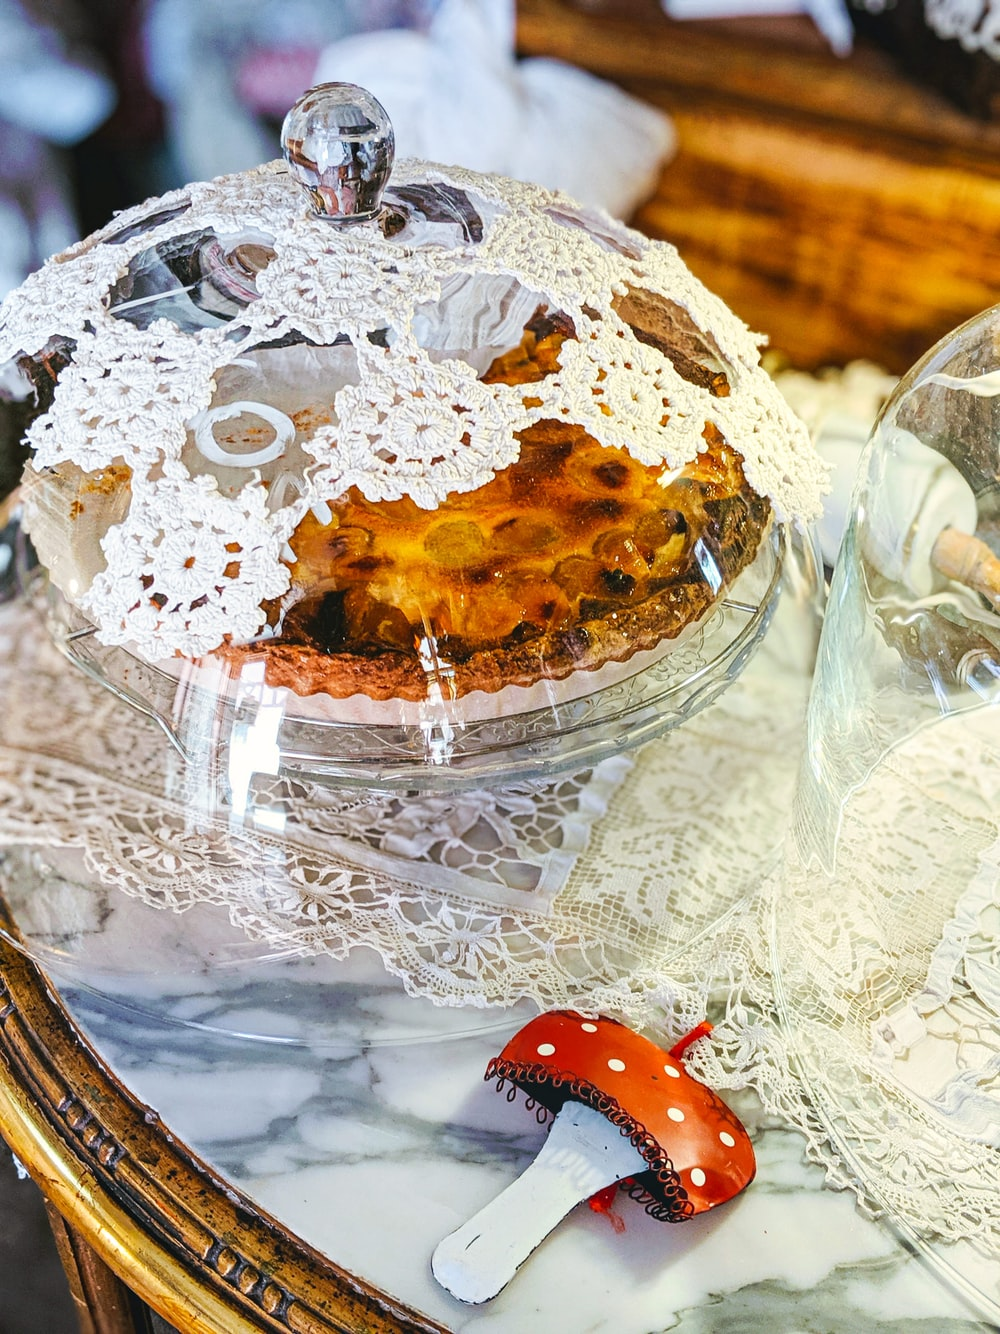 clear glass bowl with white and brown cake